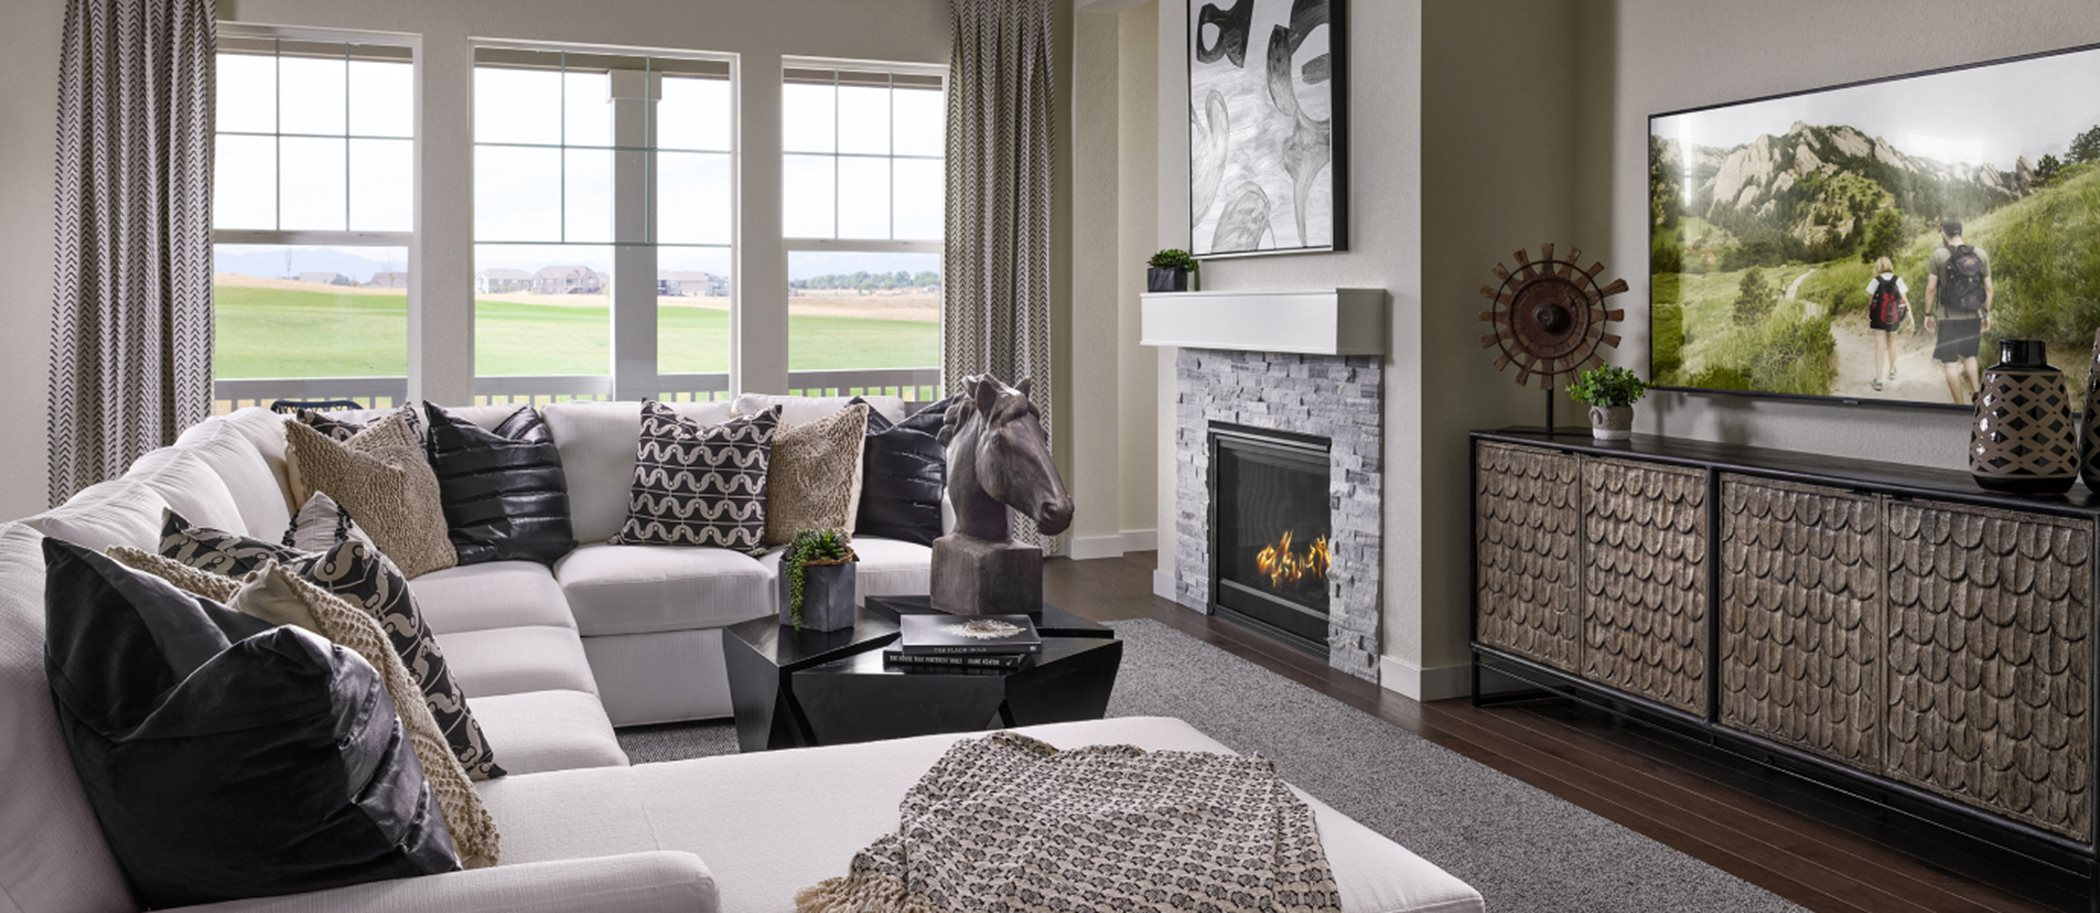 Inspiration The Heritage Collection Hepburn Room